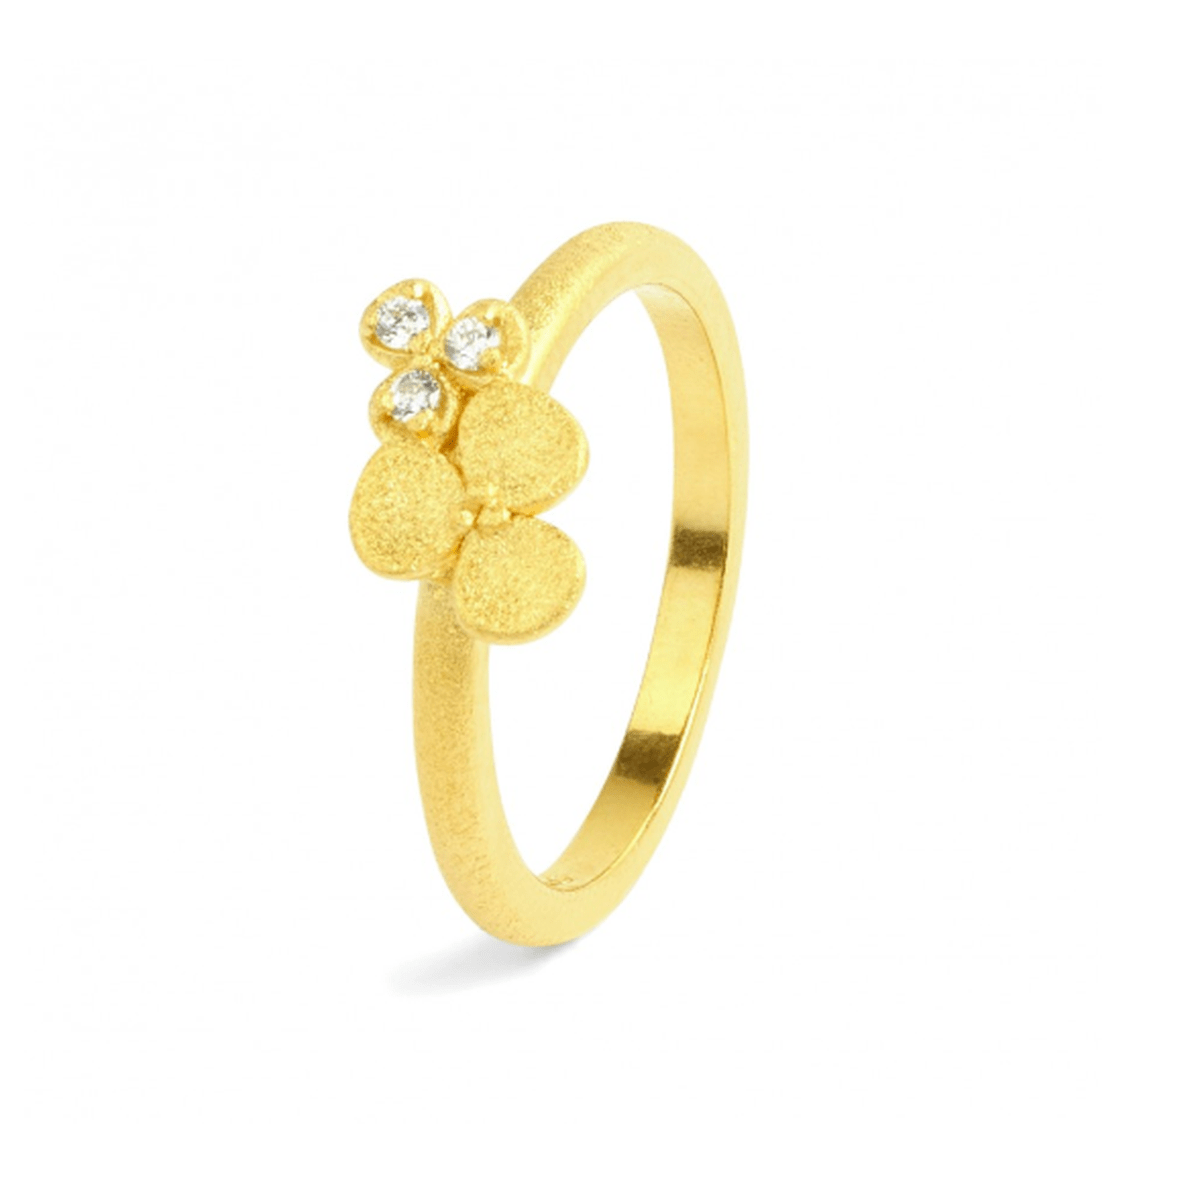 Celia Zirconia Ring - 52293156